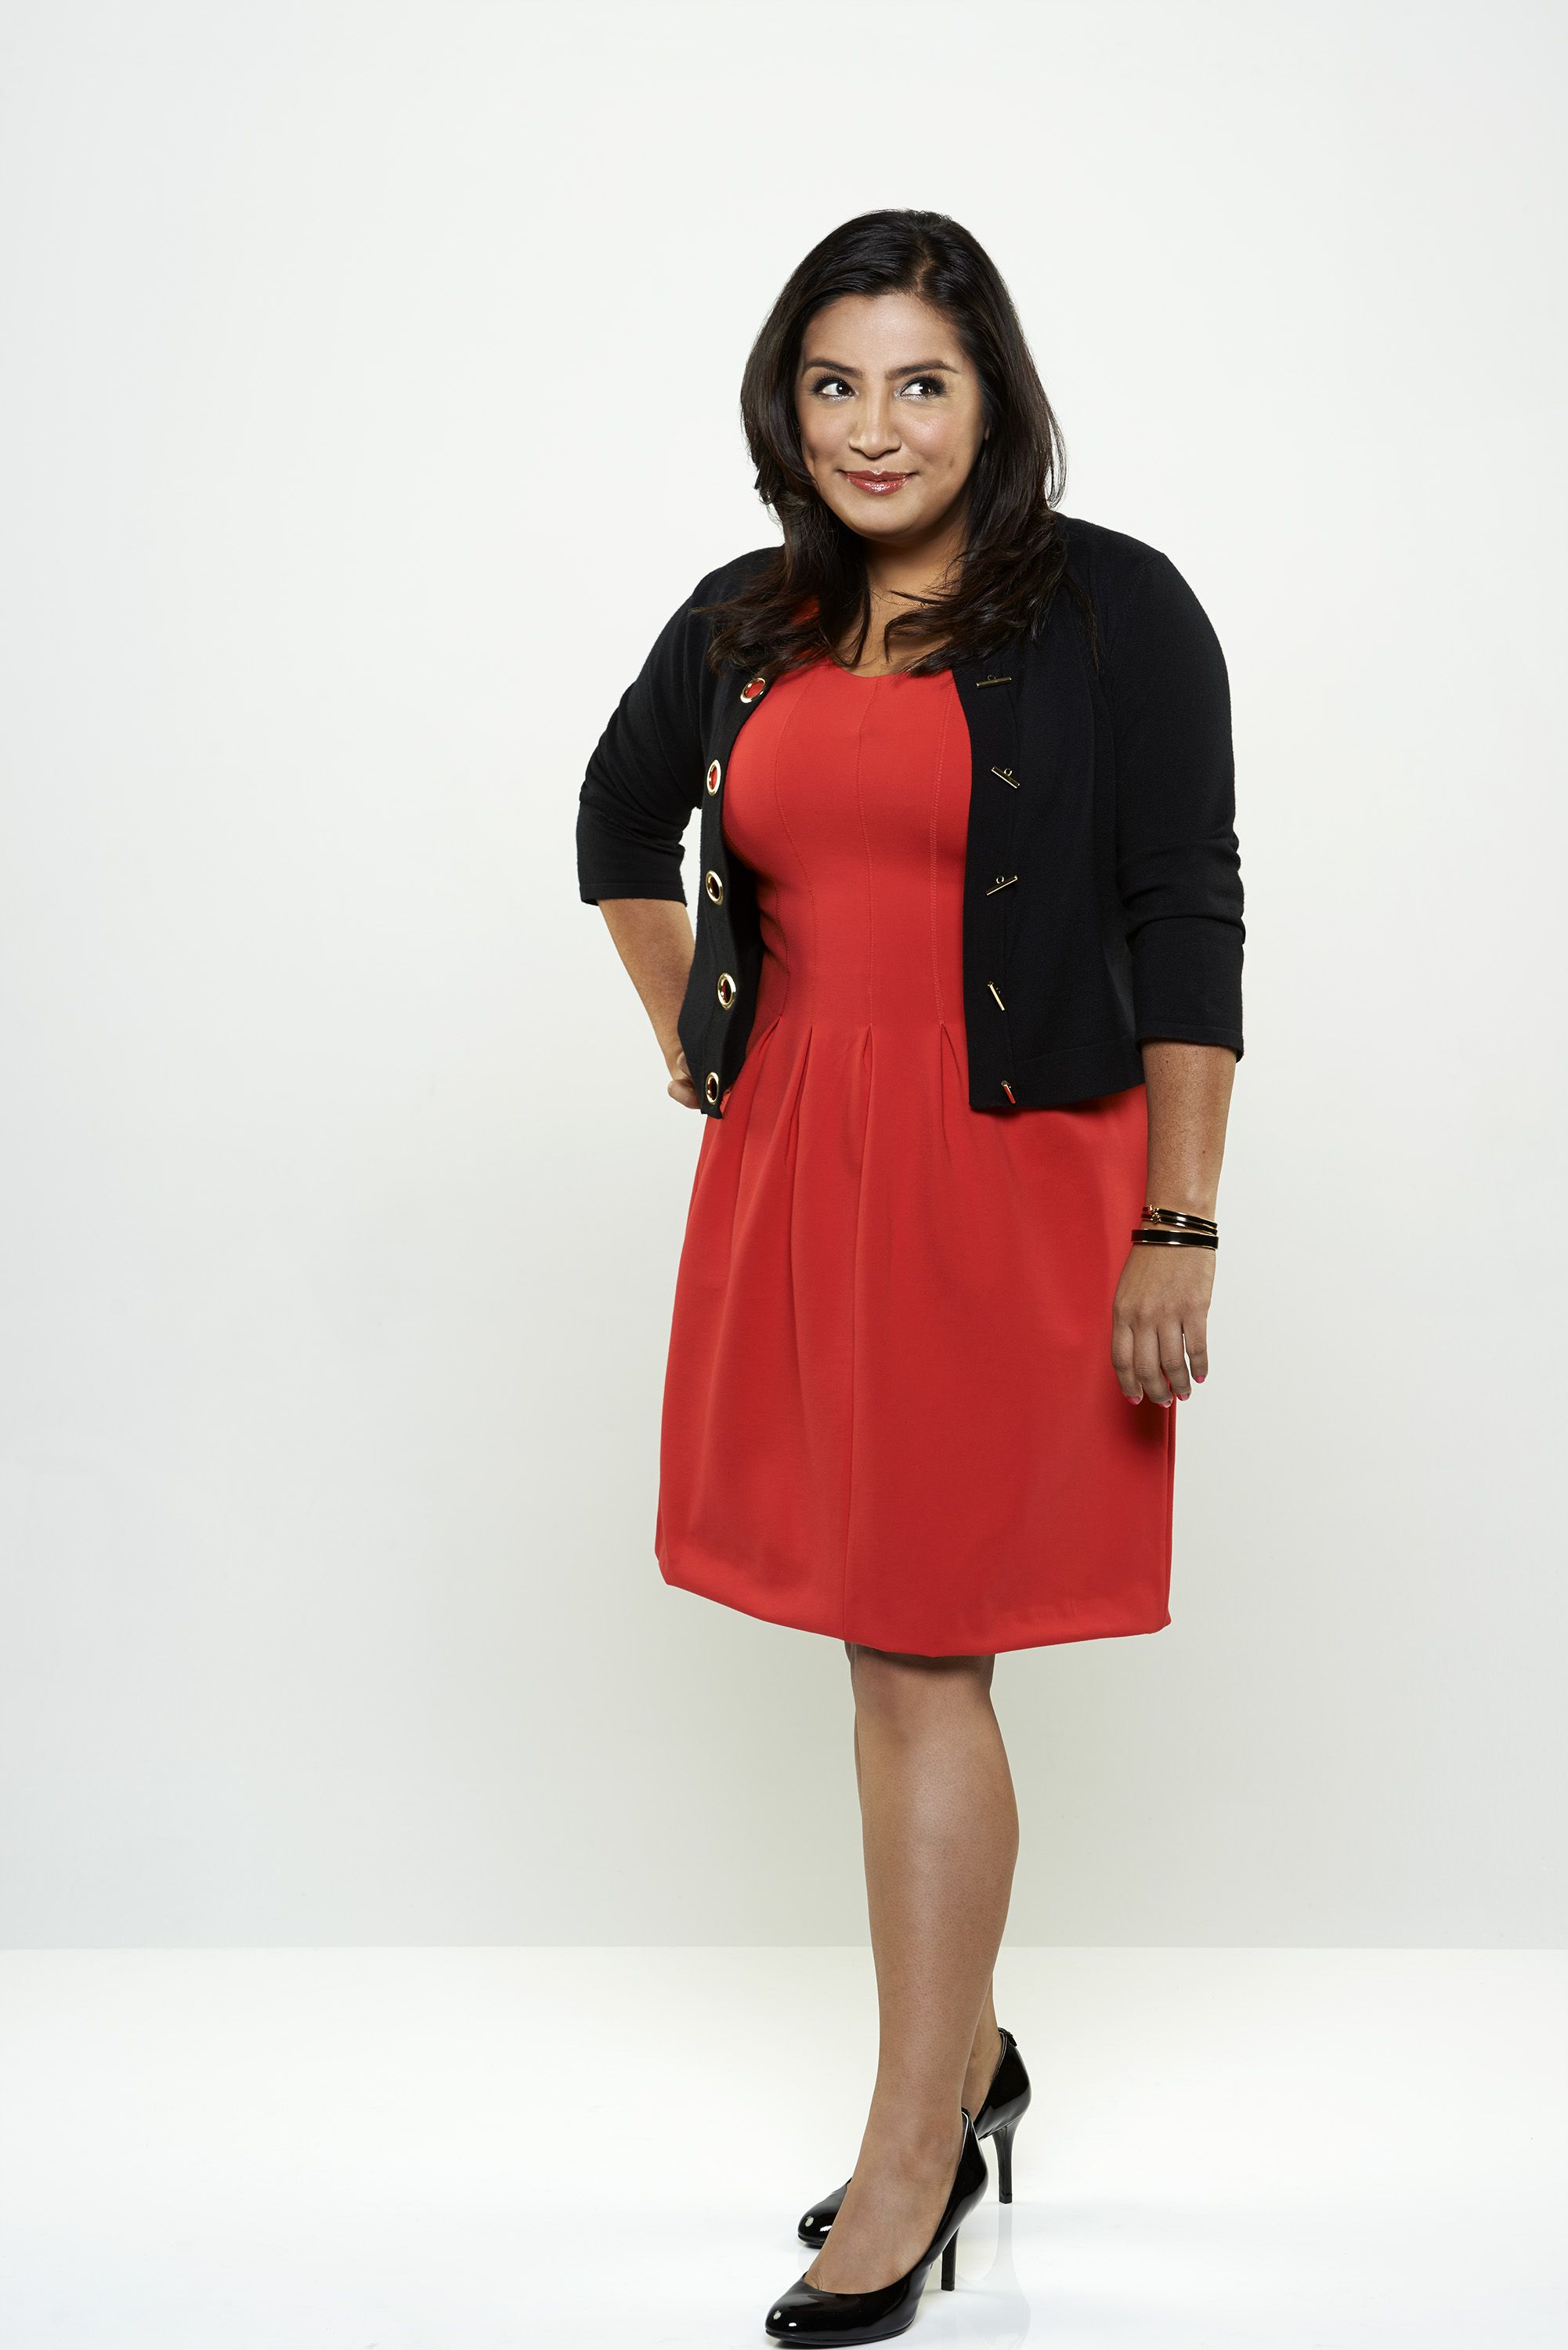 cristela alonzo twittercristela alonzo youtube, cristela alonzo tickets, cristela alonzo, cristela alonzo sons of anarchy, cristela alonzo tour, cristela alonzo net worth, cristela alonzo feet, cristela alonzo boyfriend, cristela alonzo instagram, cristela alonzo twitter, cristela alonzo weight loss, cristela alonzo height, cristela alonzo blog, cristela alonzo tv show, cristela alonzo the view, cristela alonzo show, cristela alonzo san antonio, cristela alonzo last comic standing, cristela alonzo facebook, cristela alonzo abc